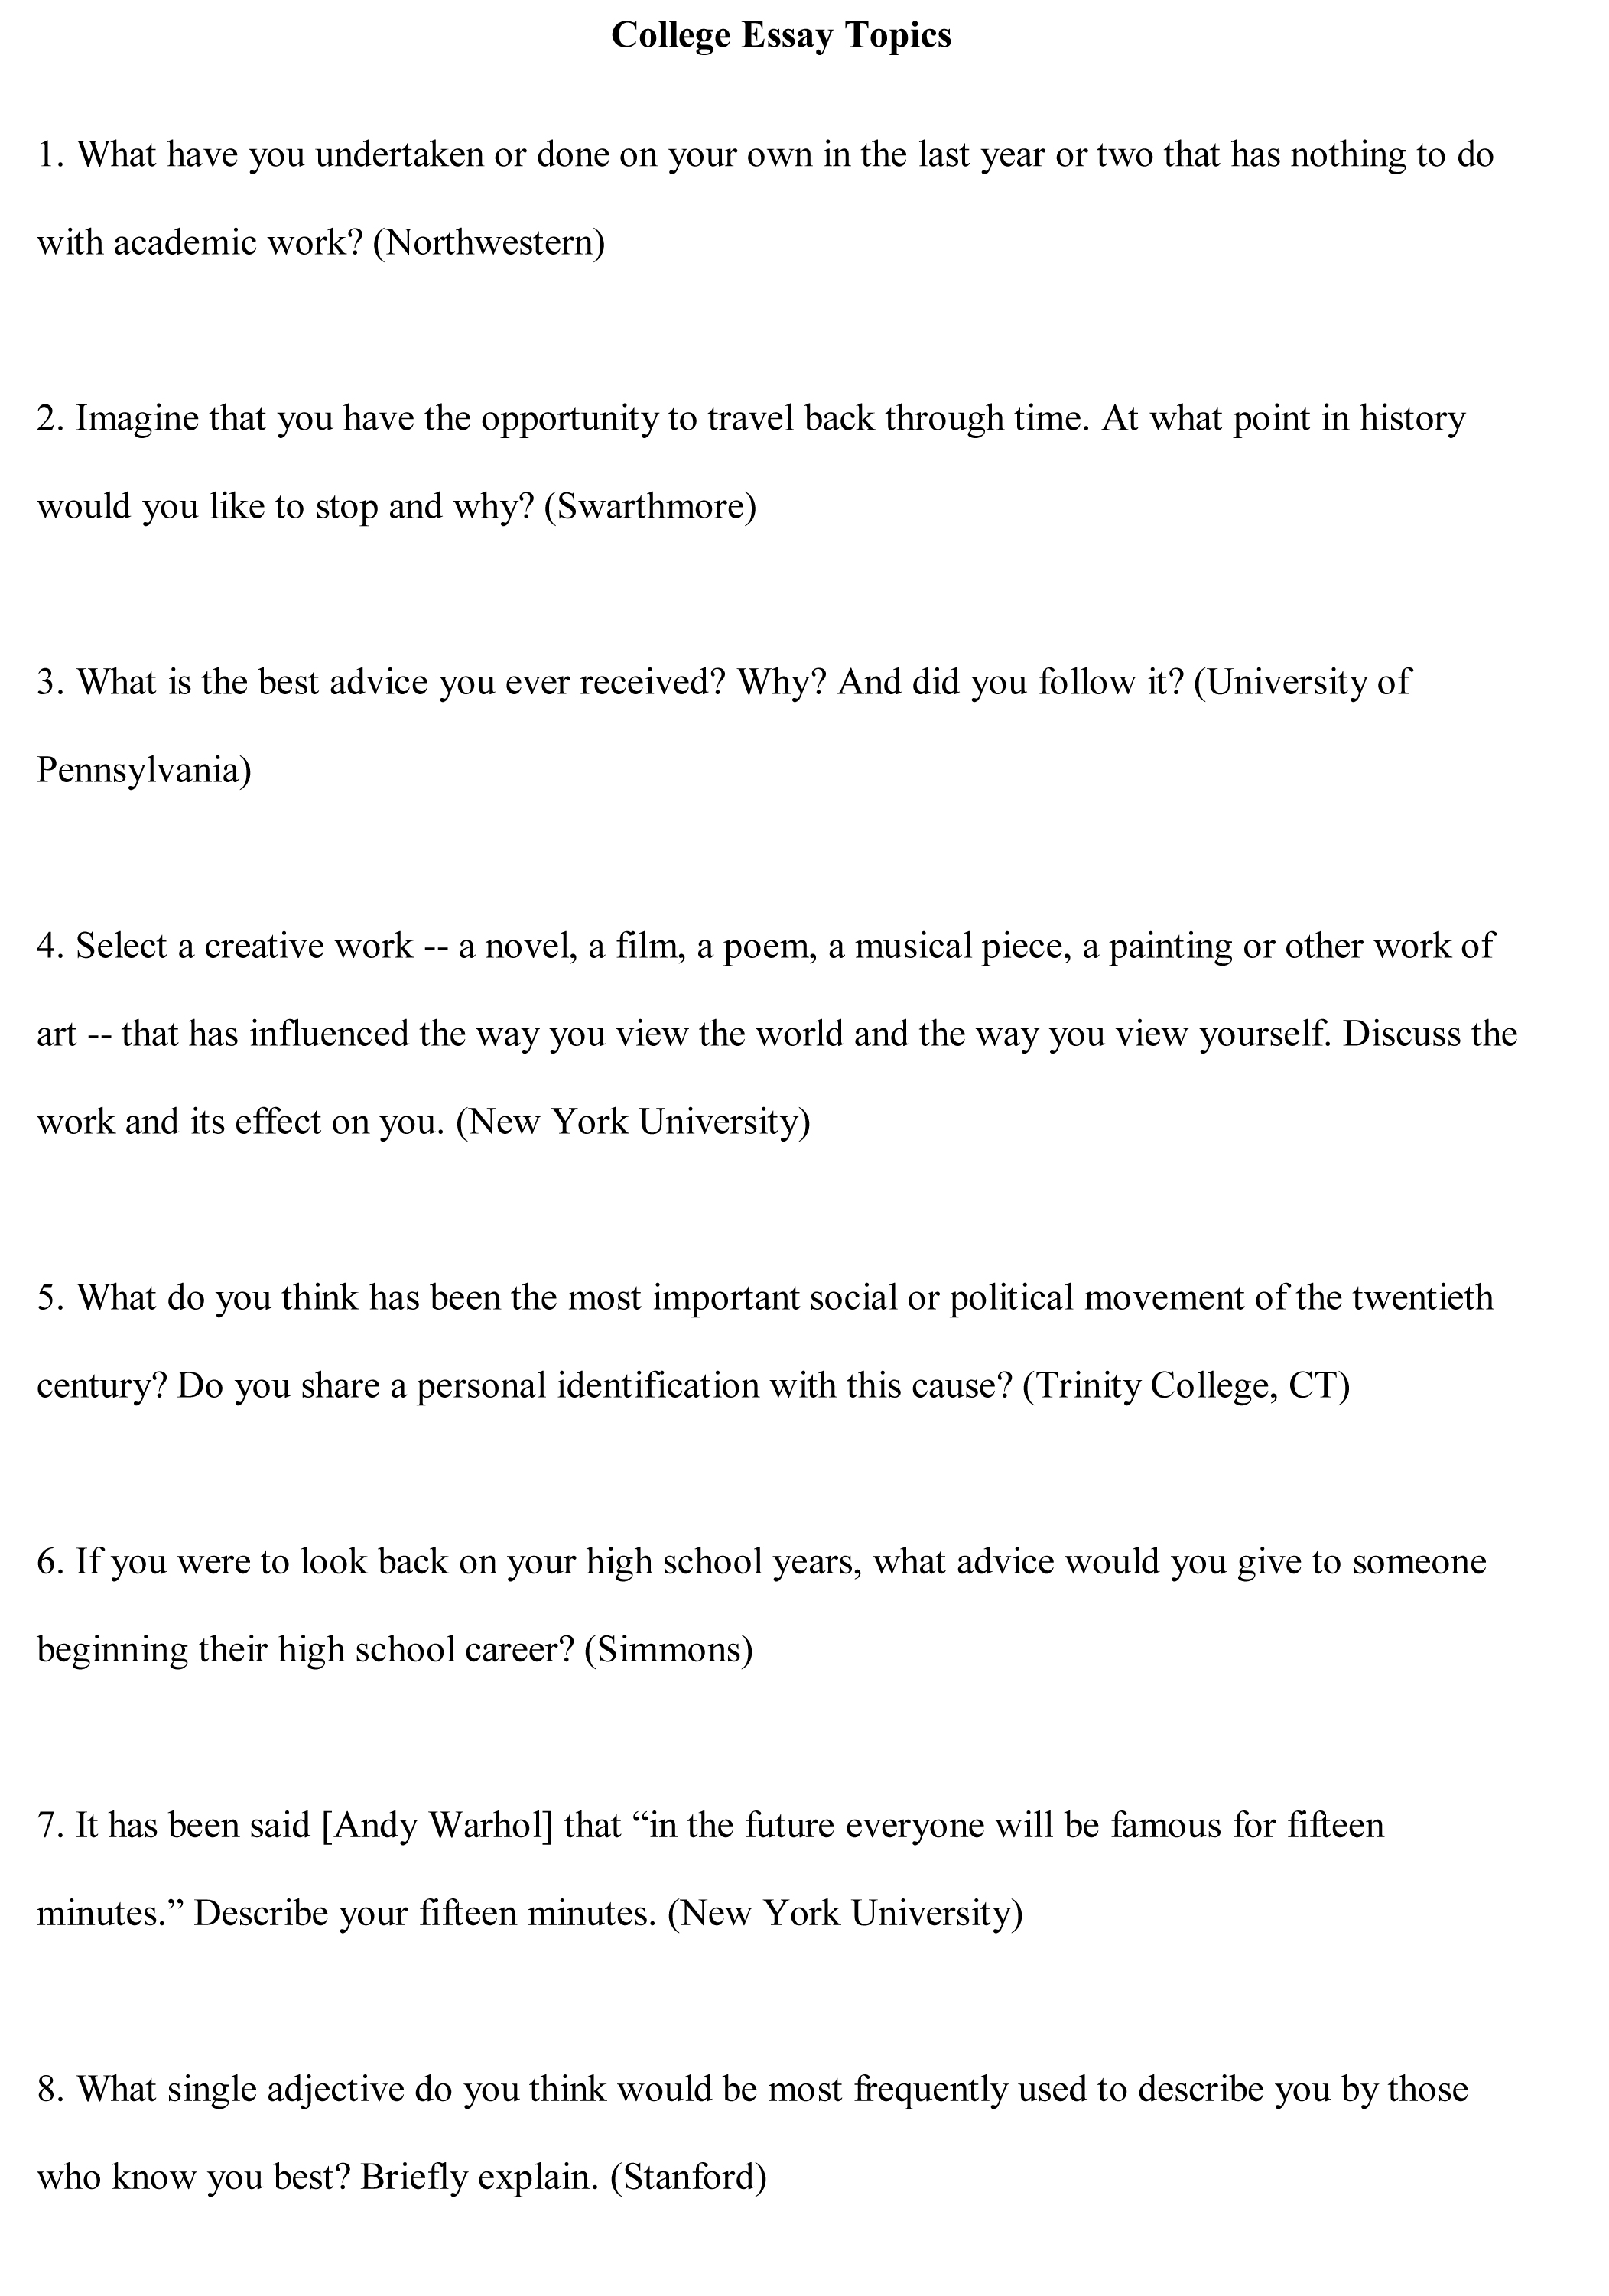 003 College Essay Topics Free Sample1 Prompts Impressive And Examples Application Uc 2017 Full